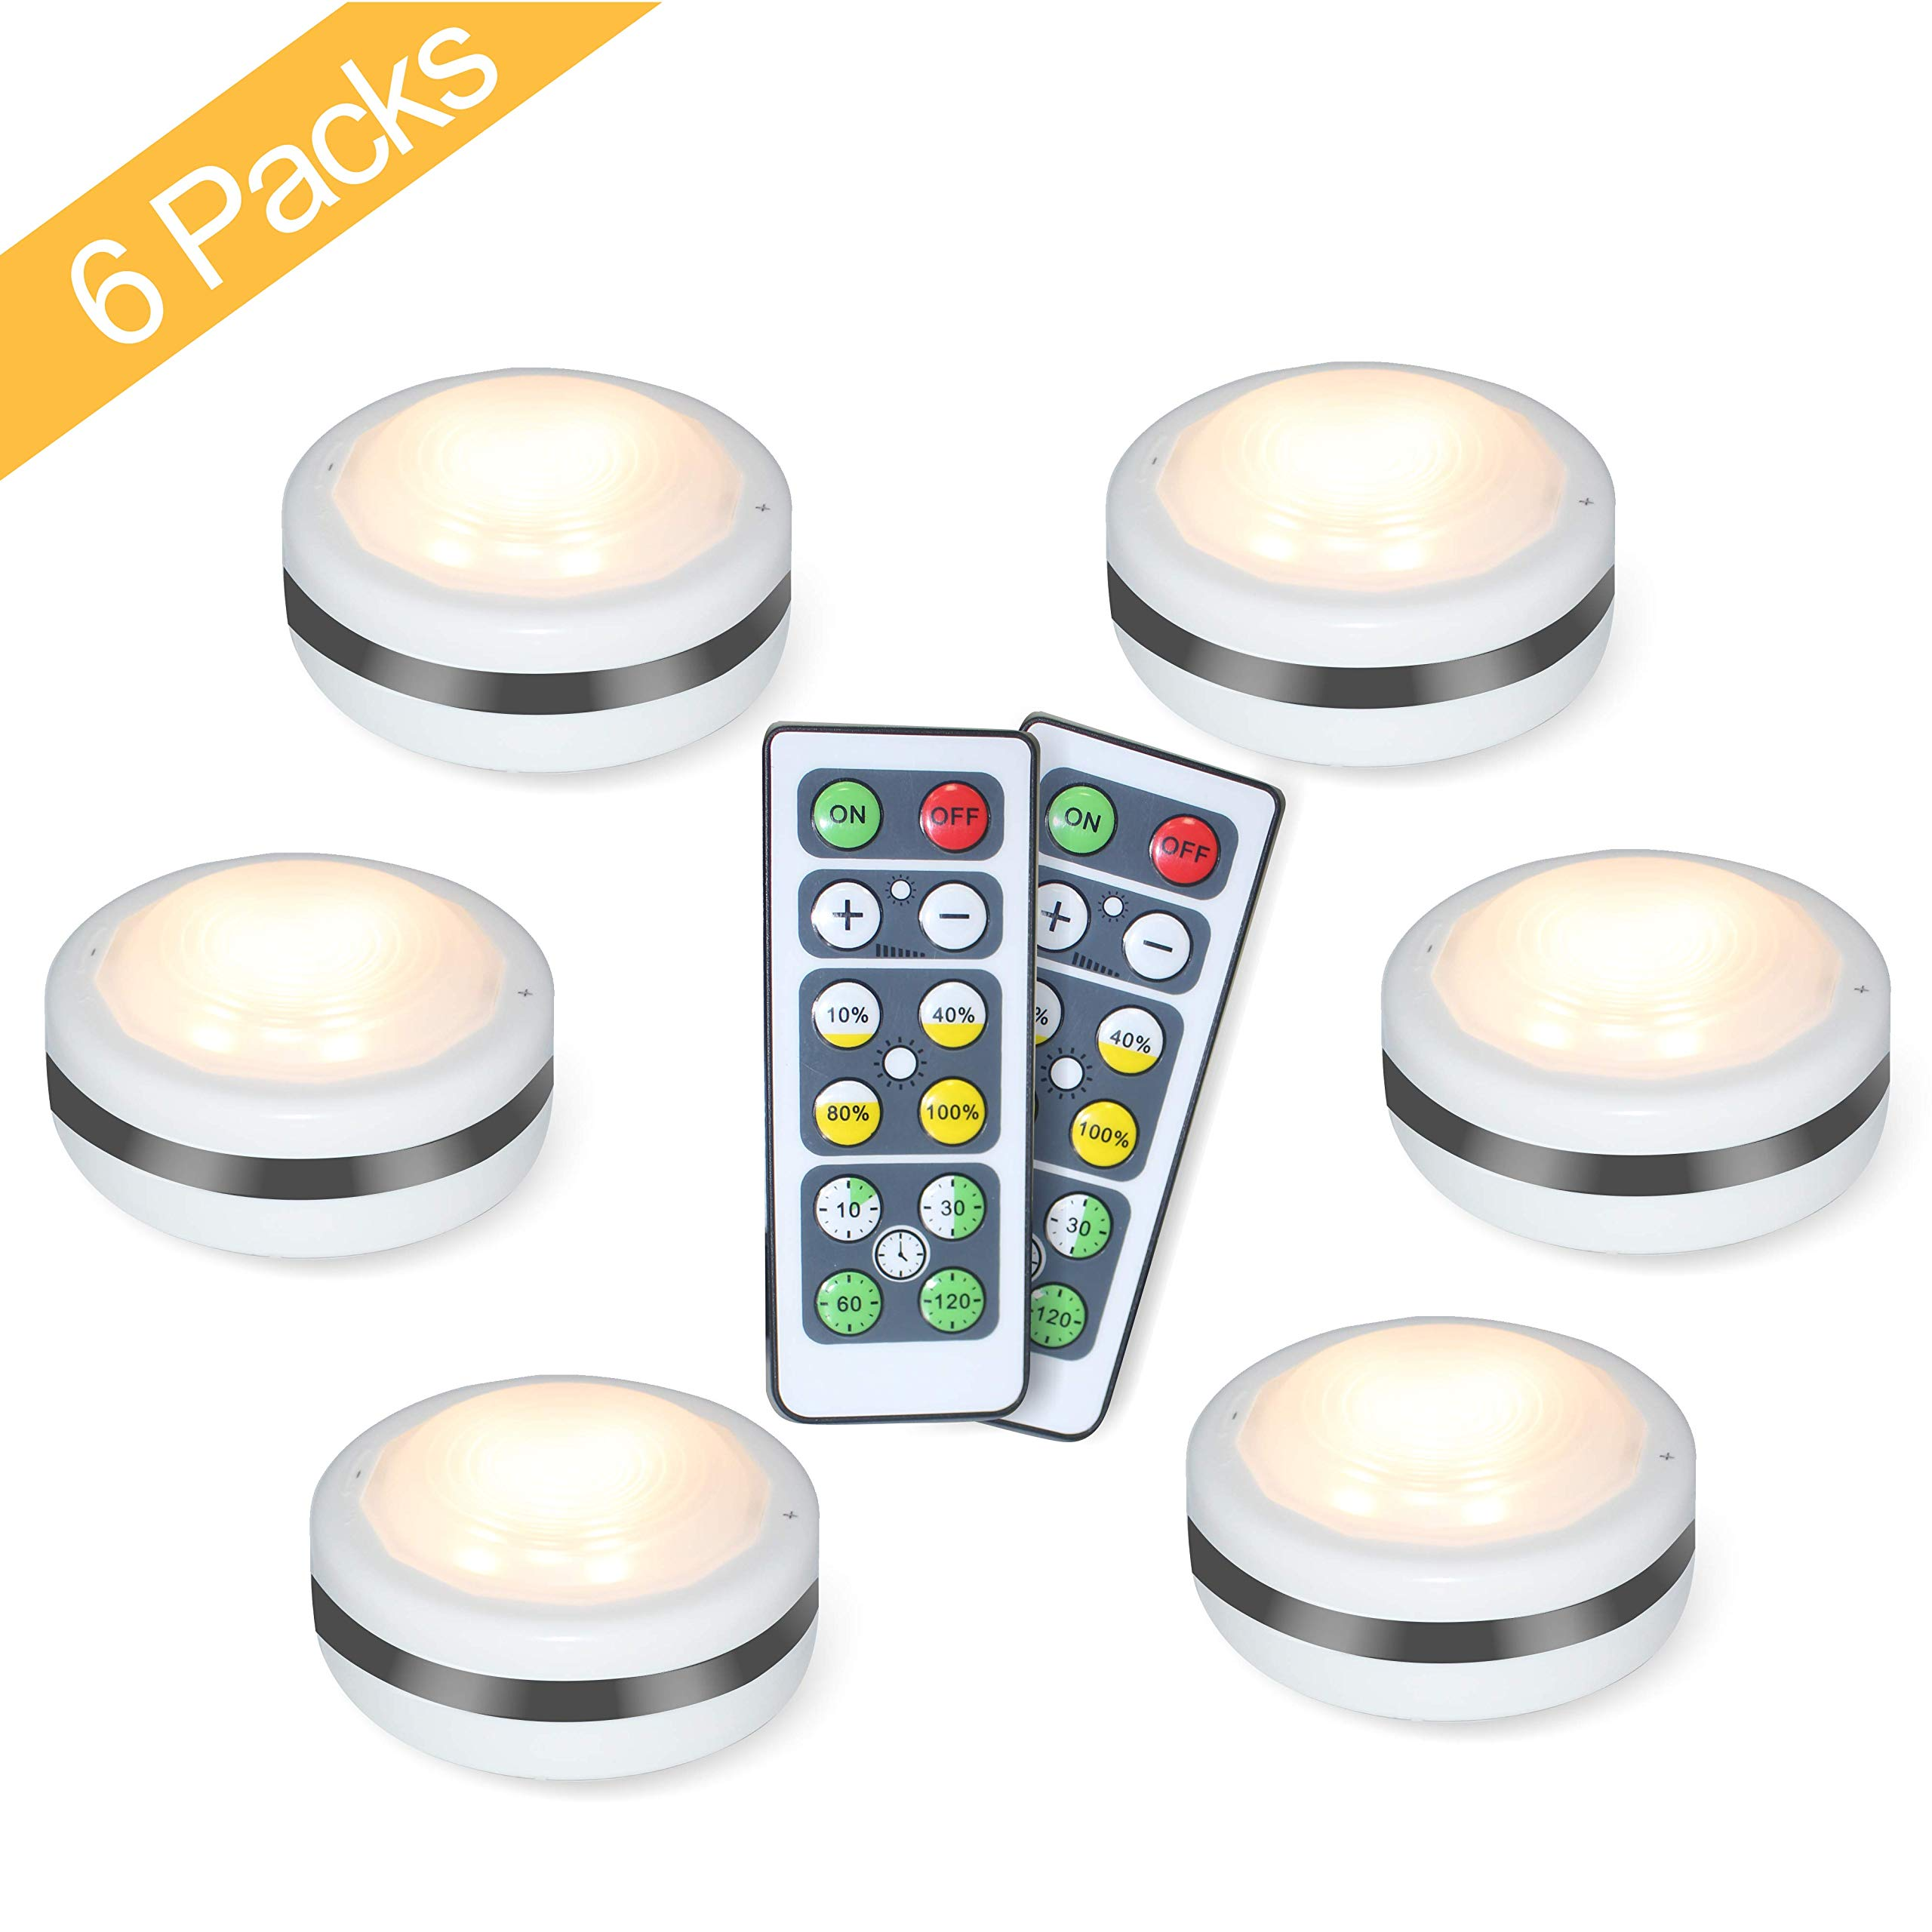 Puck Lights With Remote, Starxing Wireless Led Puck Lights Battery Operated, Led Puck Lights With Remote Control, Led Under Cabinet Lighting, Dimmable Closet Light, Battery Powered, 4000K Natural Whit by Starxing (Image #1)